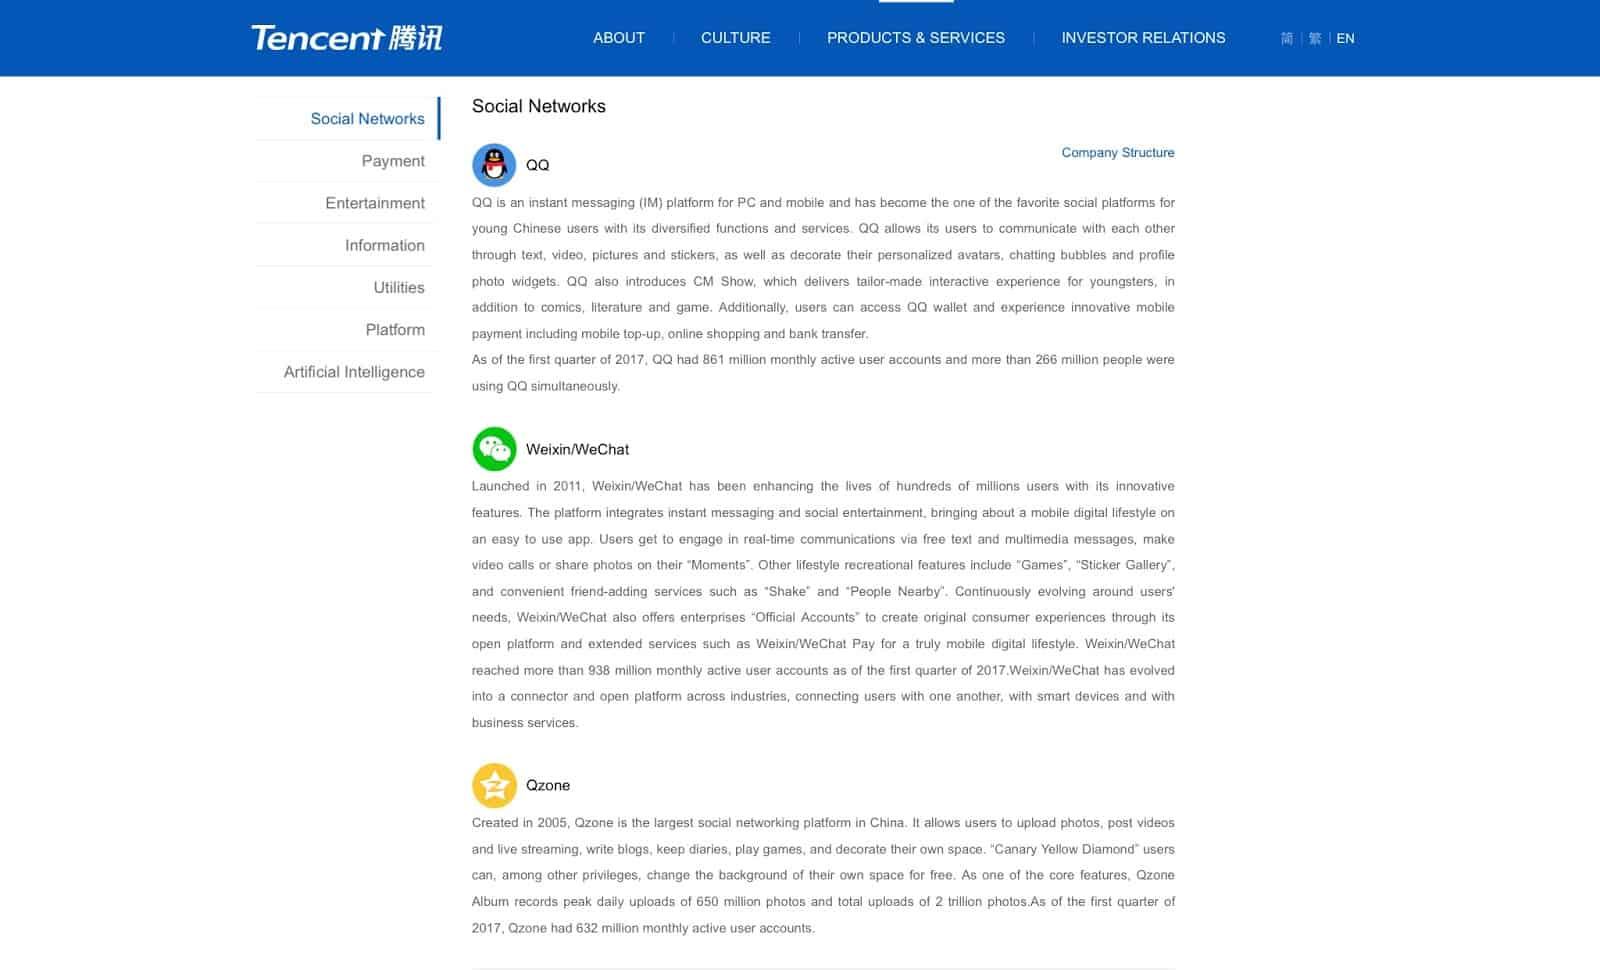 Tencent: Connecting People for A Greater Future - Product Reviews